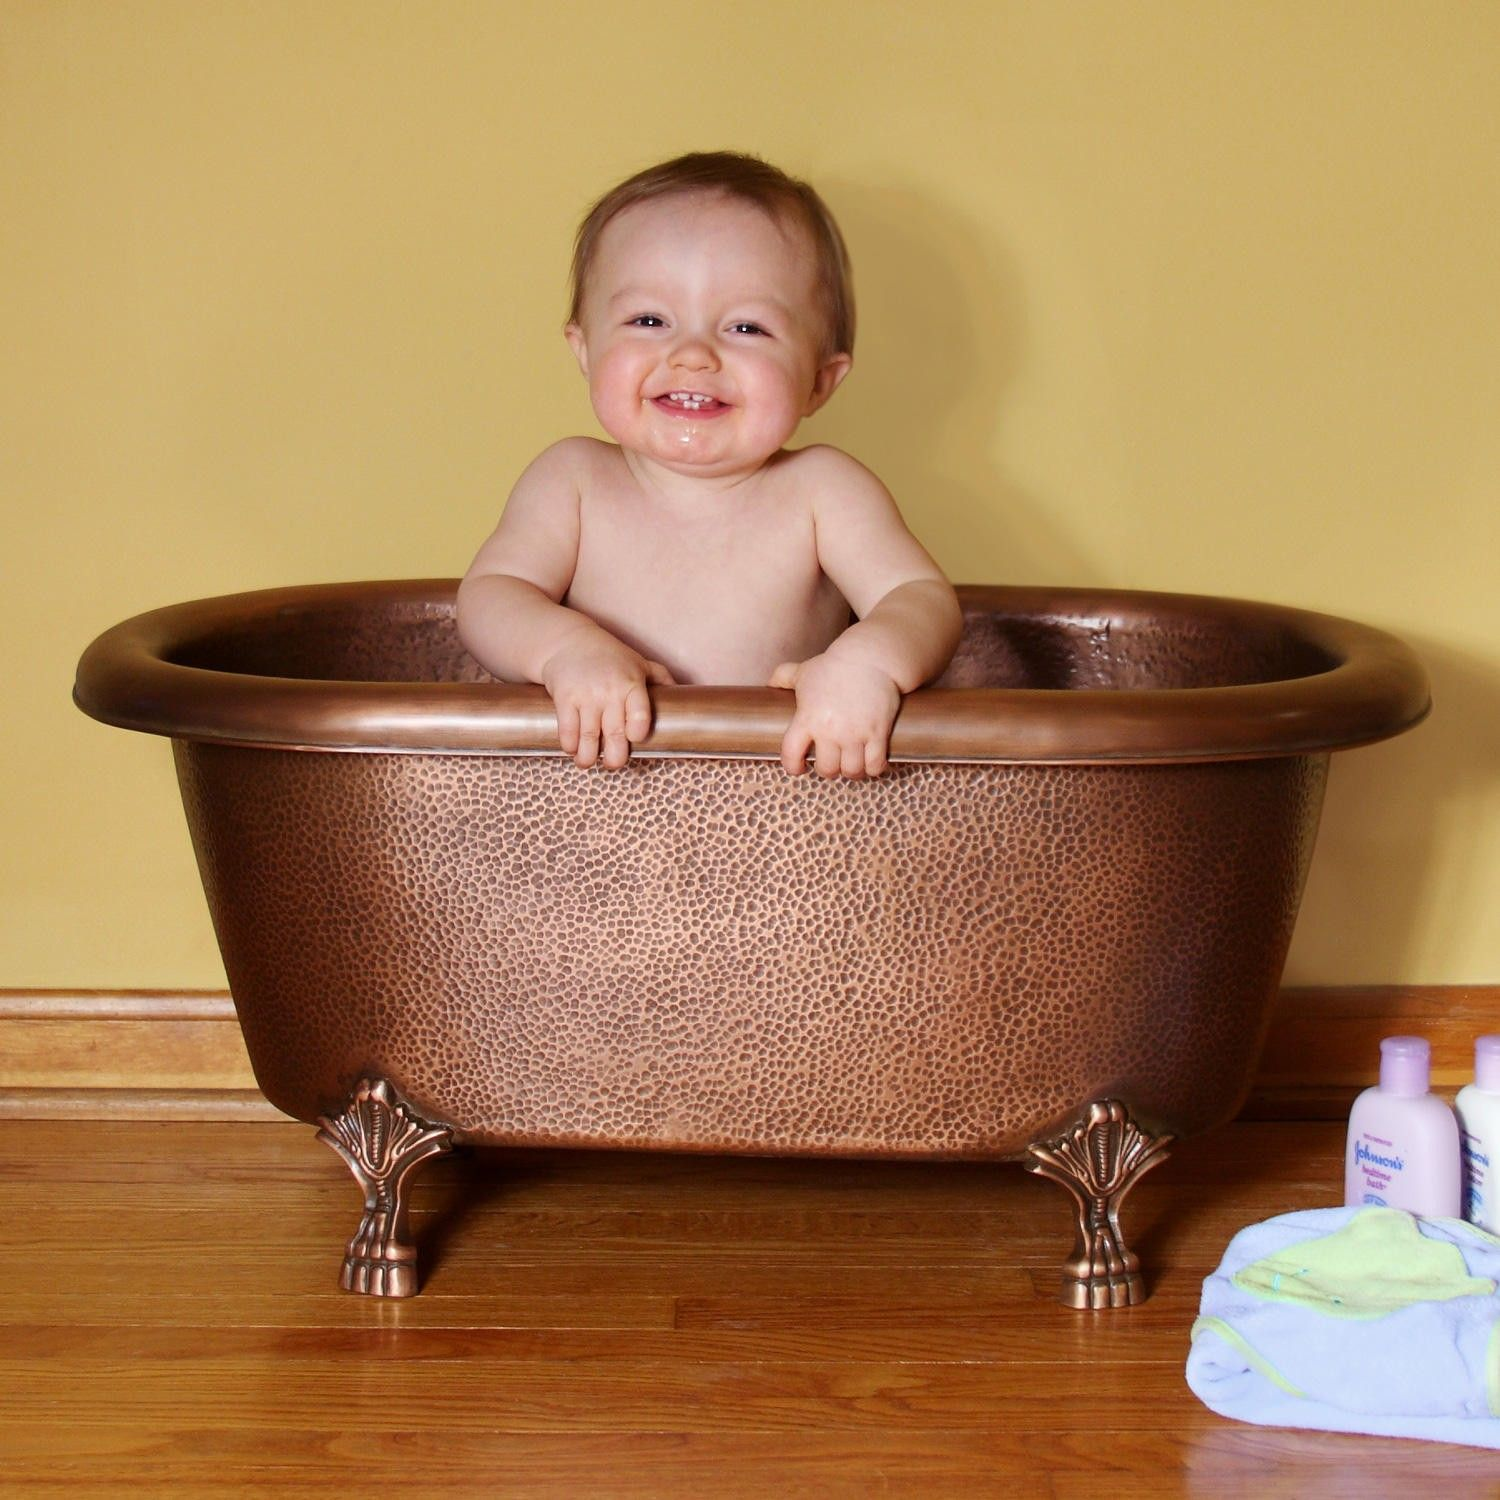 Baby Caleb Hammered Copper Clawfoot Tub How Cute Is This Baby